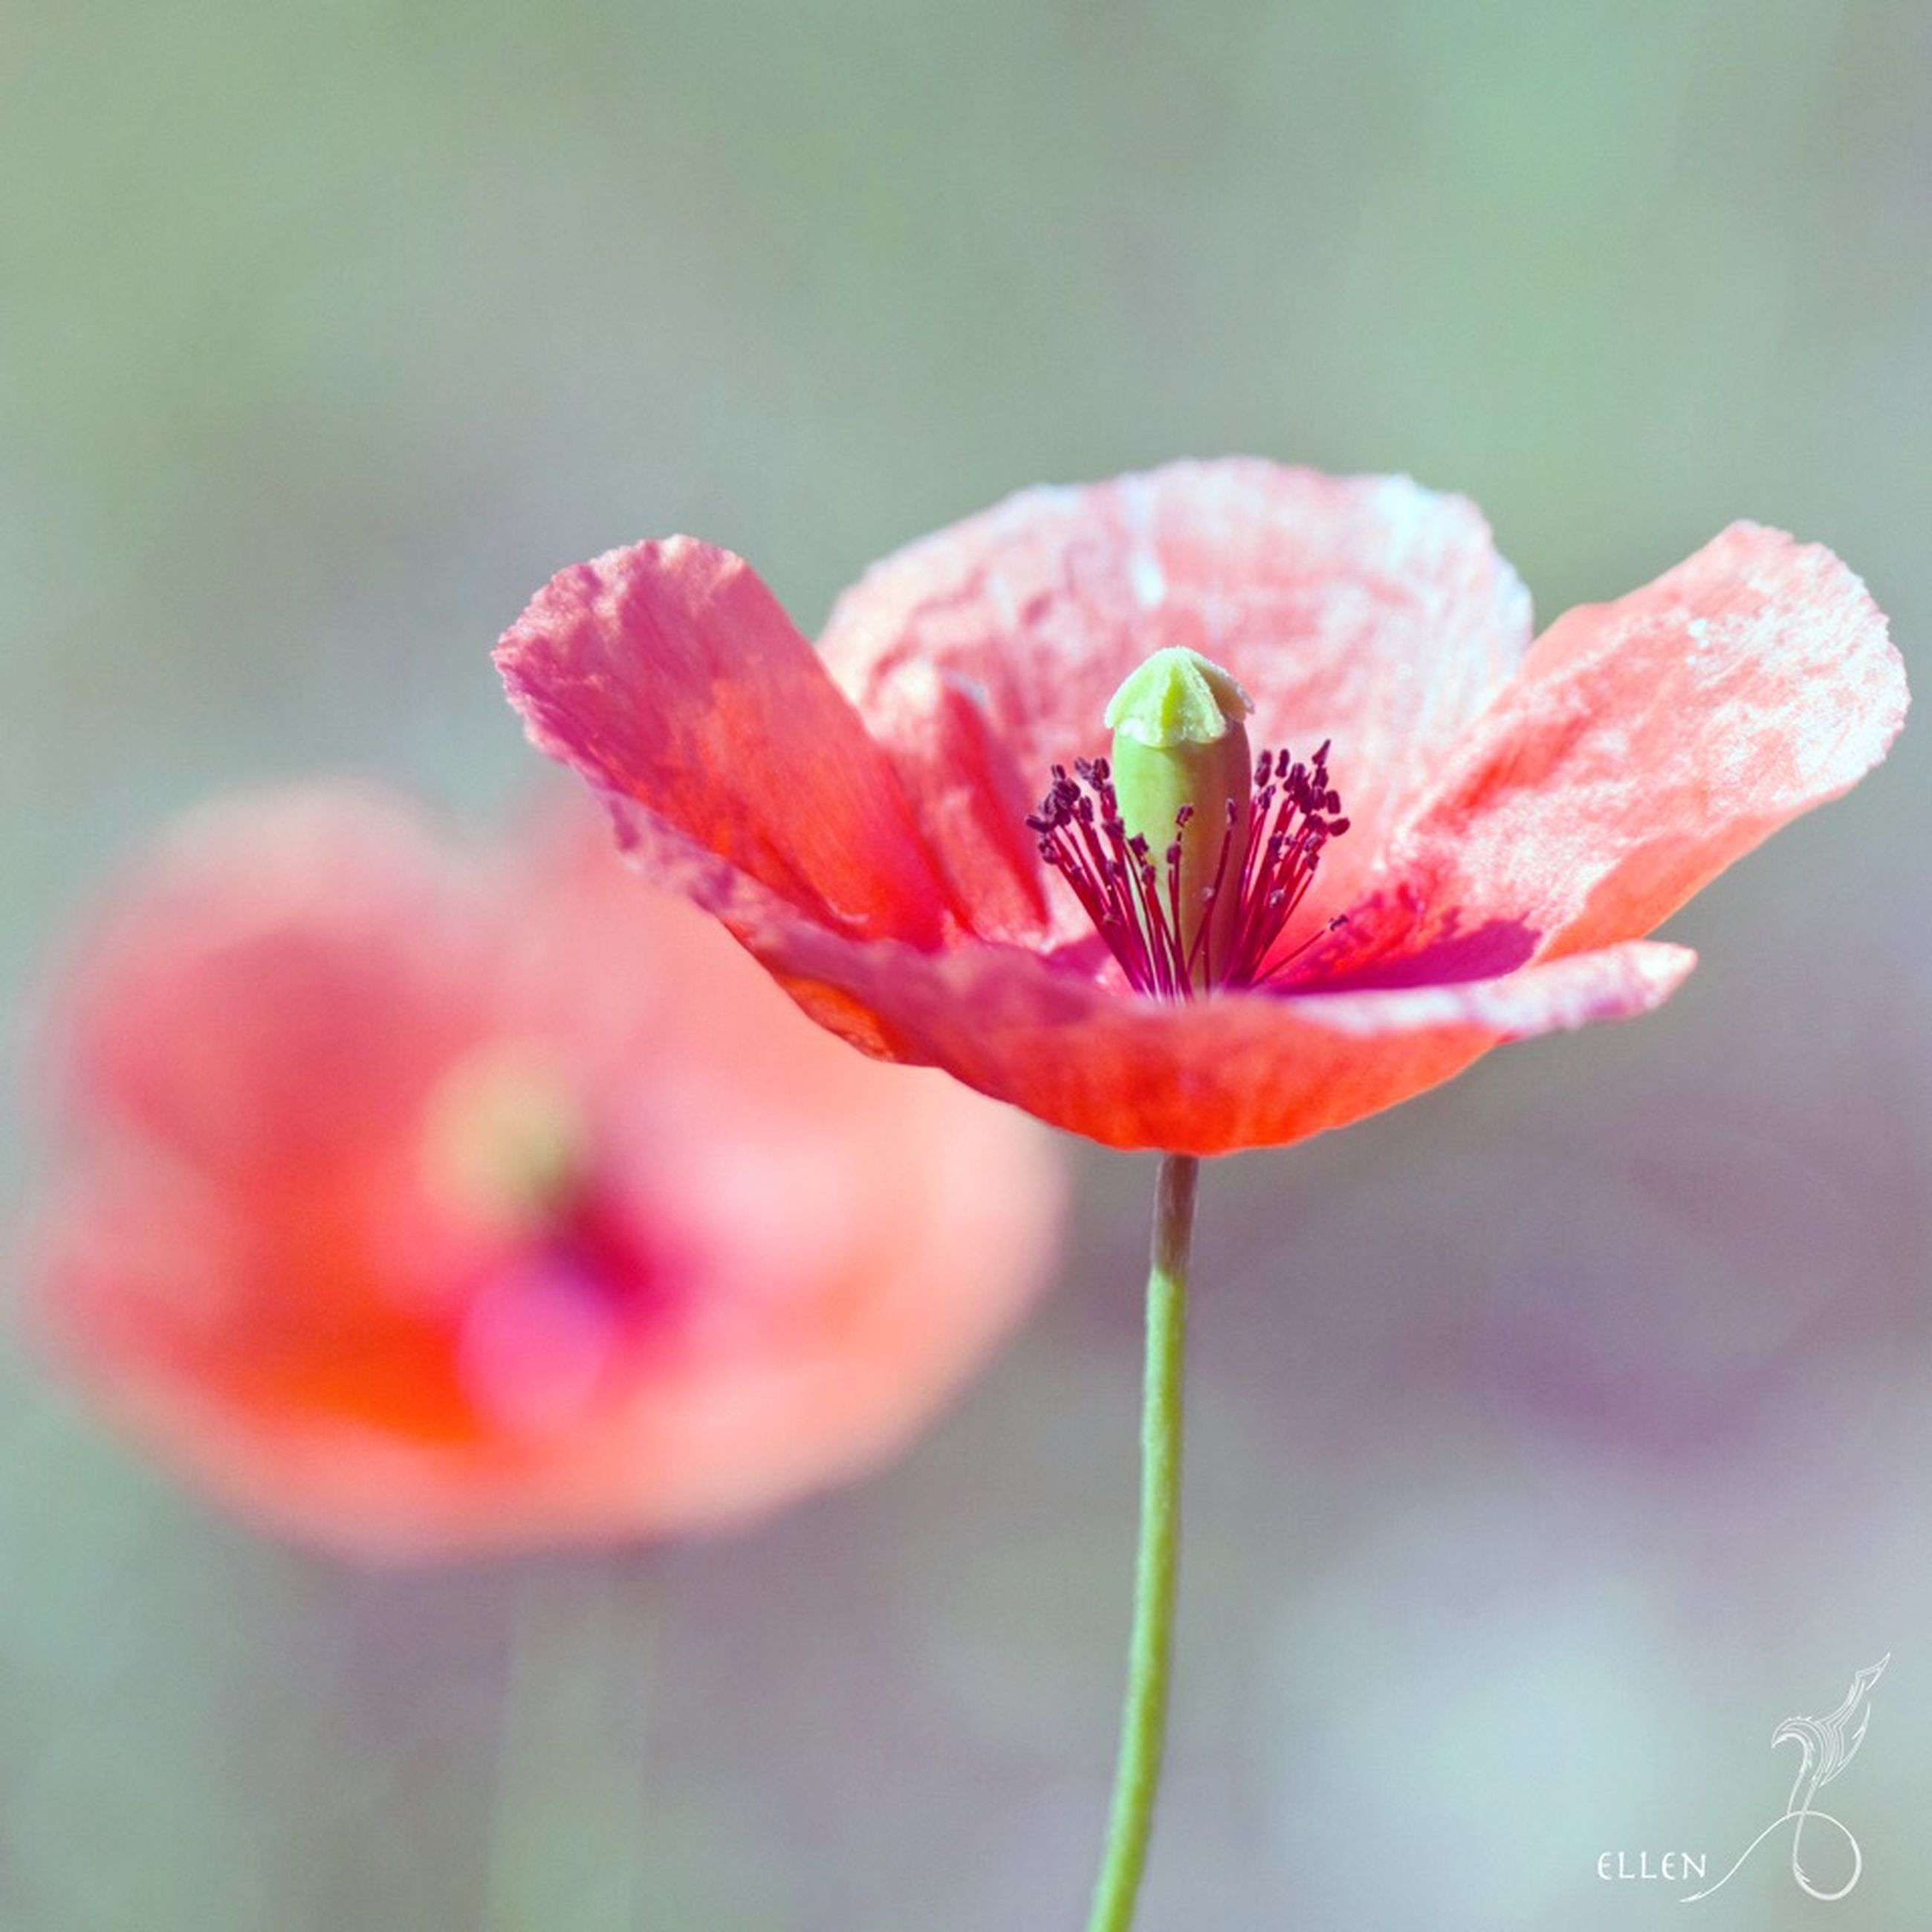 flower, freshness, petal, flower head, fragility, growth, beauty in nature, close-up, single flower, focus on foreground, blooming, nature, plant, red, stem, stamen, pollen, in bloom, pink color, blossom